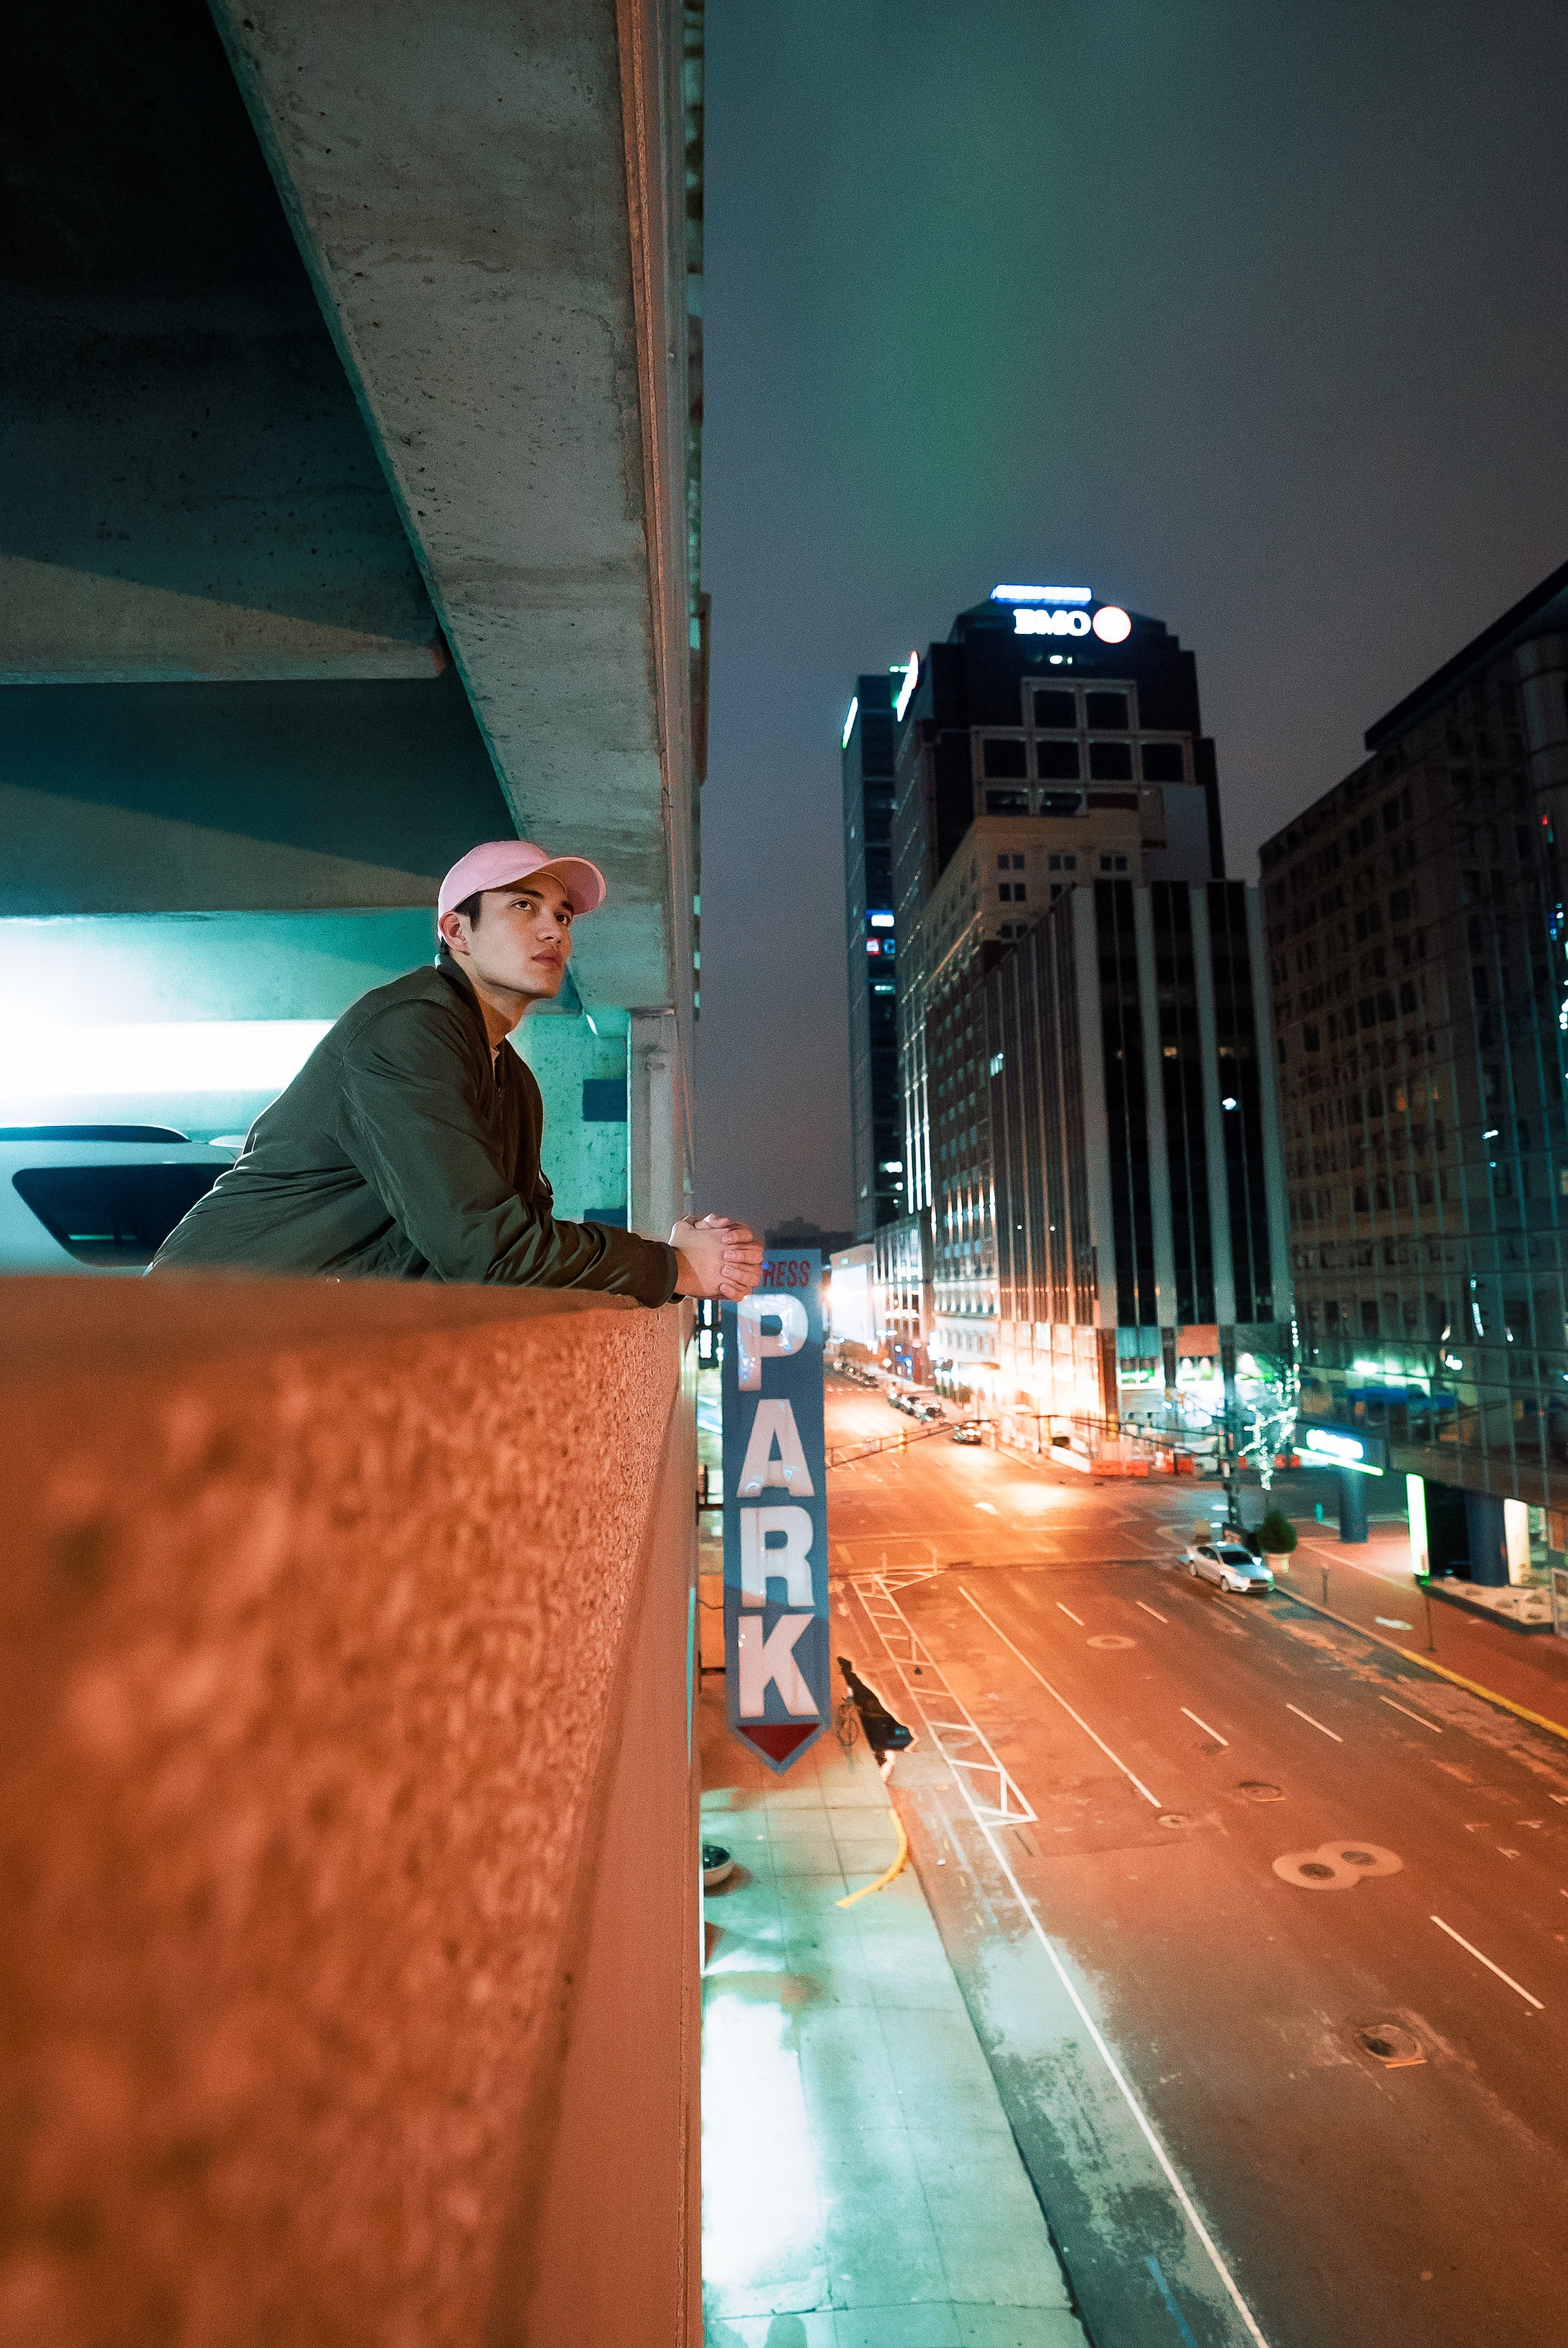 man leaning on concrete railing on building